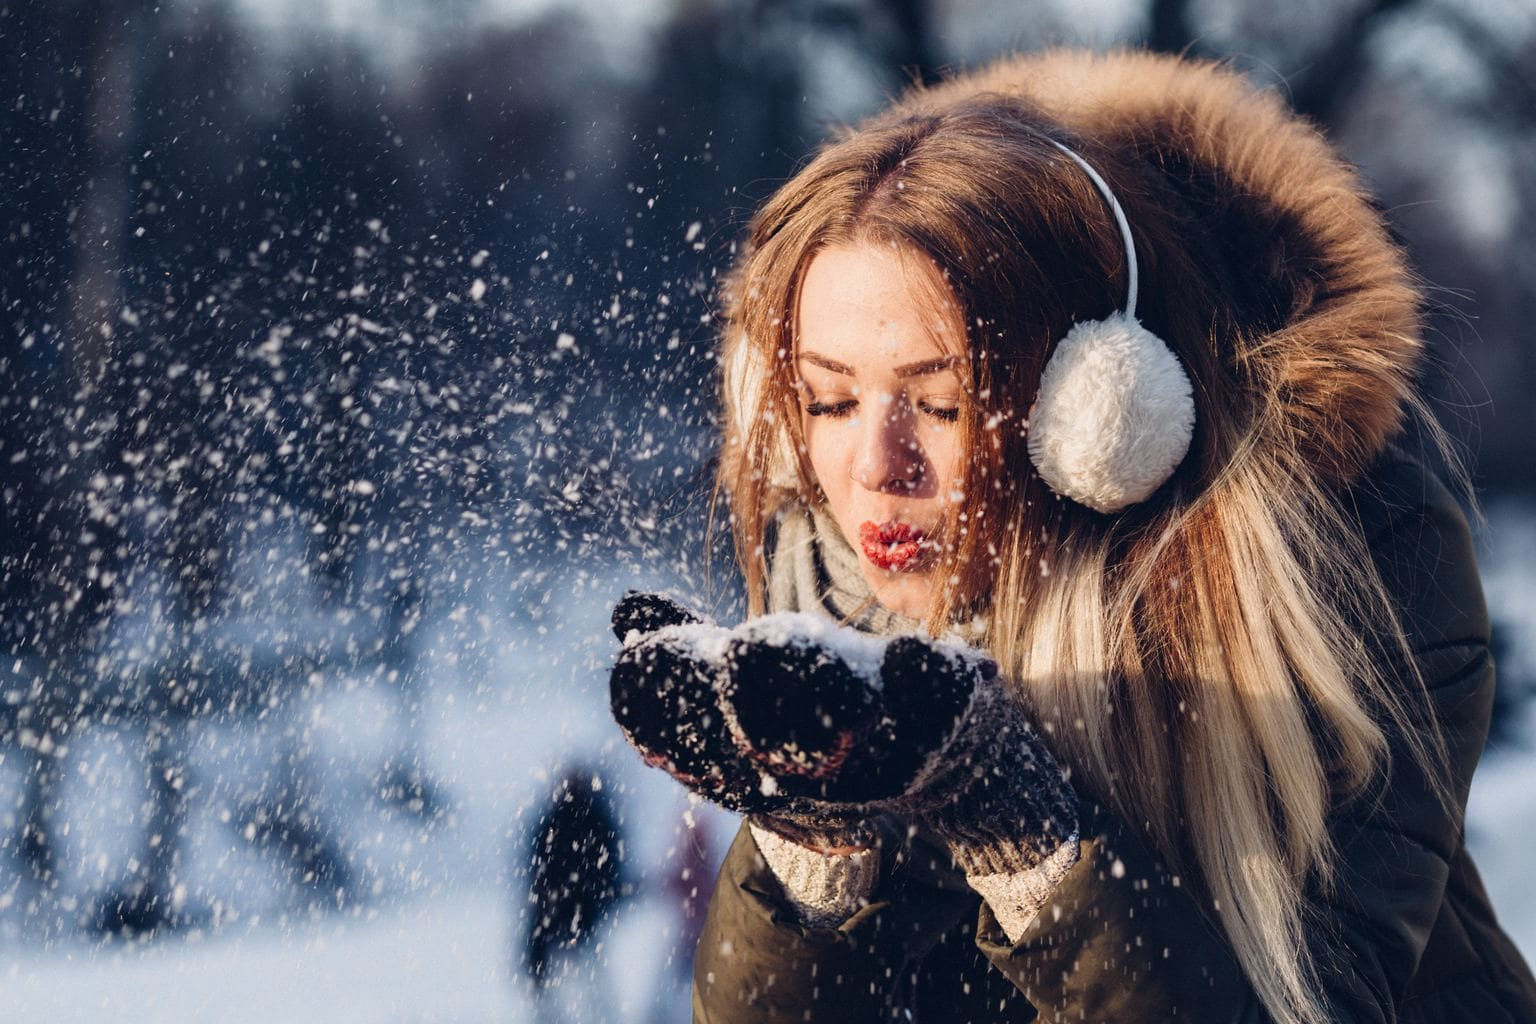 Girl with earmuffs blowing snow in the wintertime.